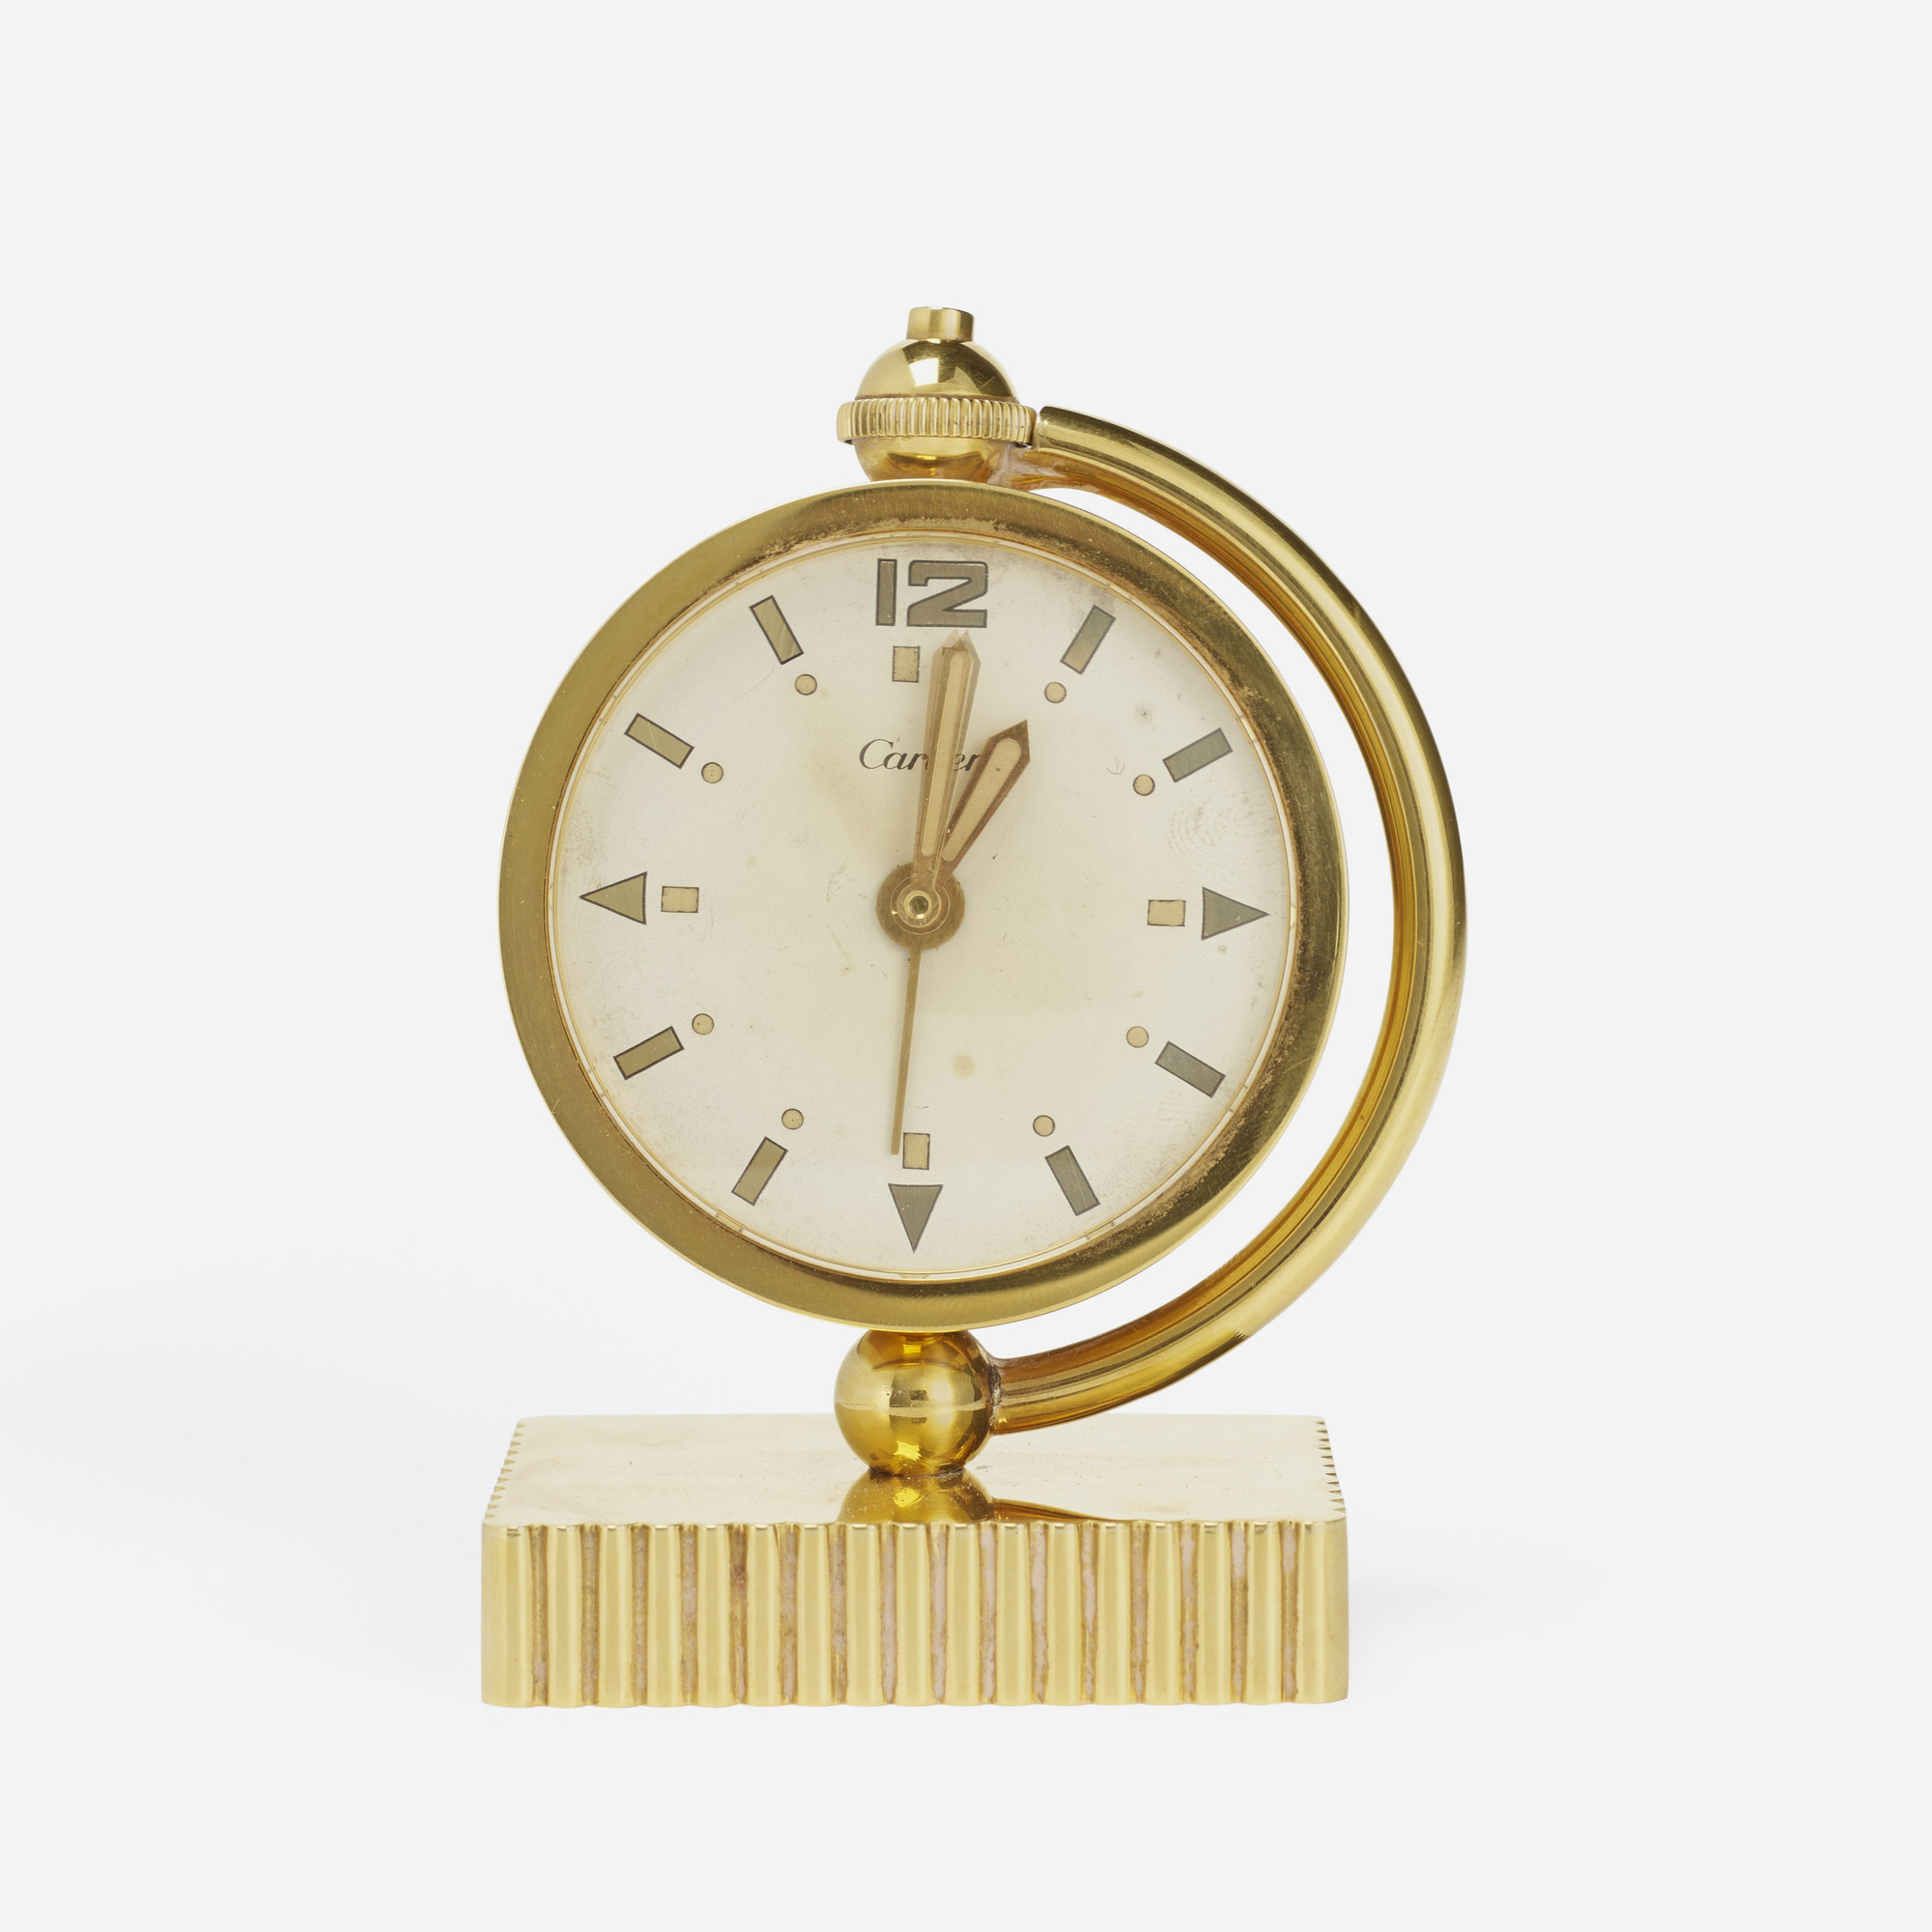 143: Cartier / A gold table clock (2 of 2)